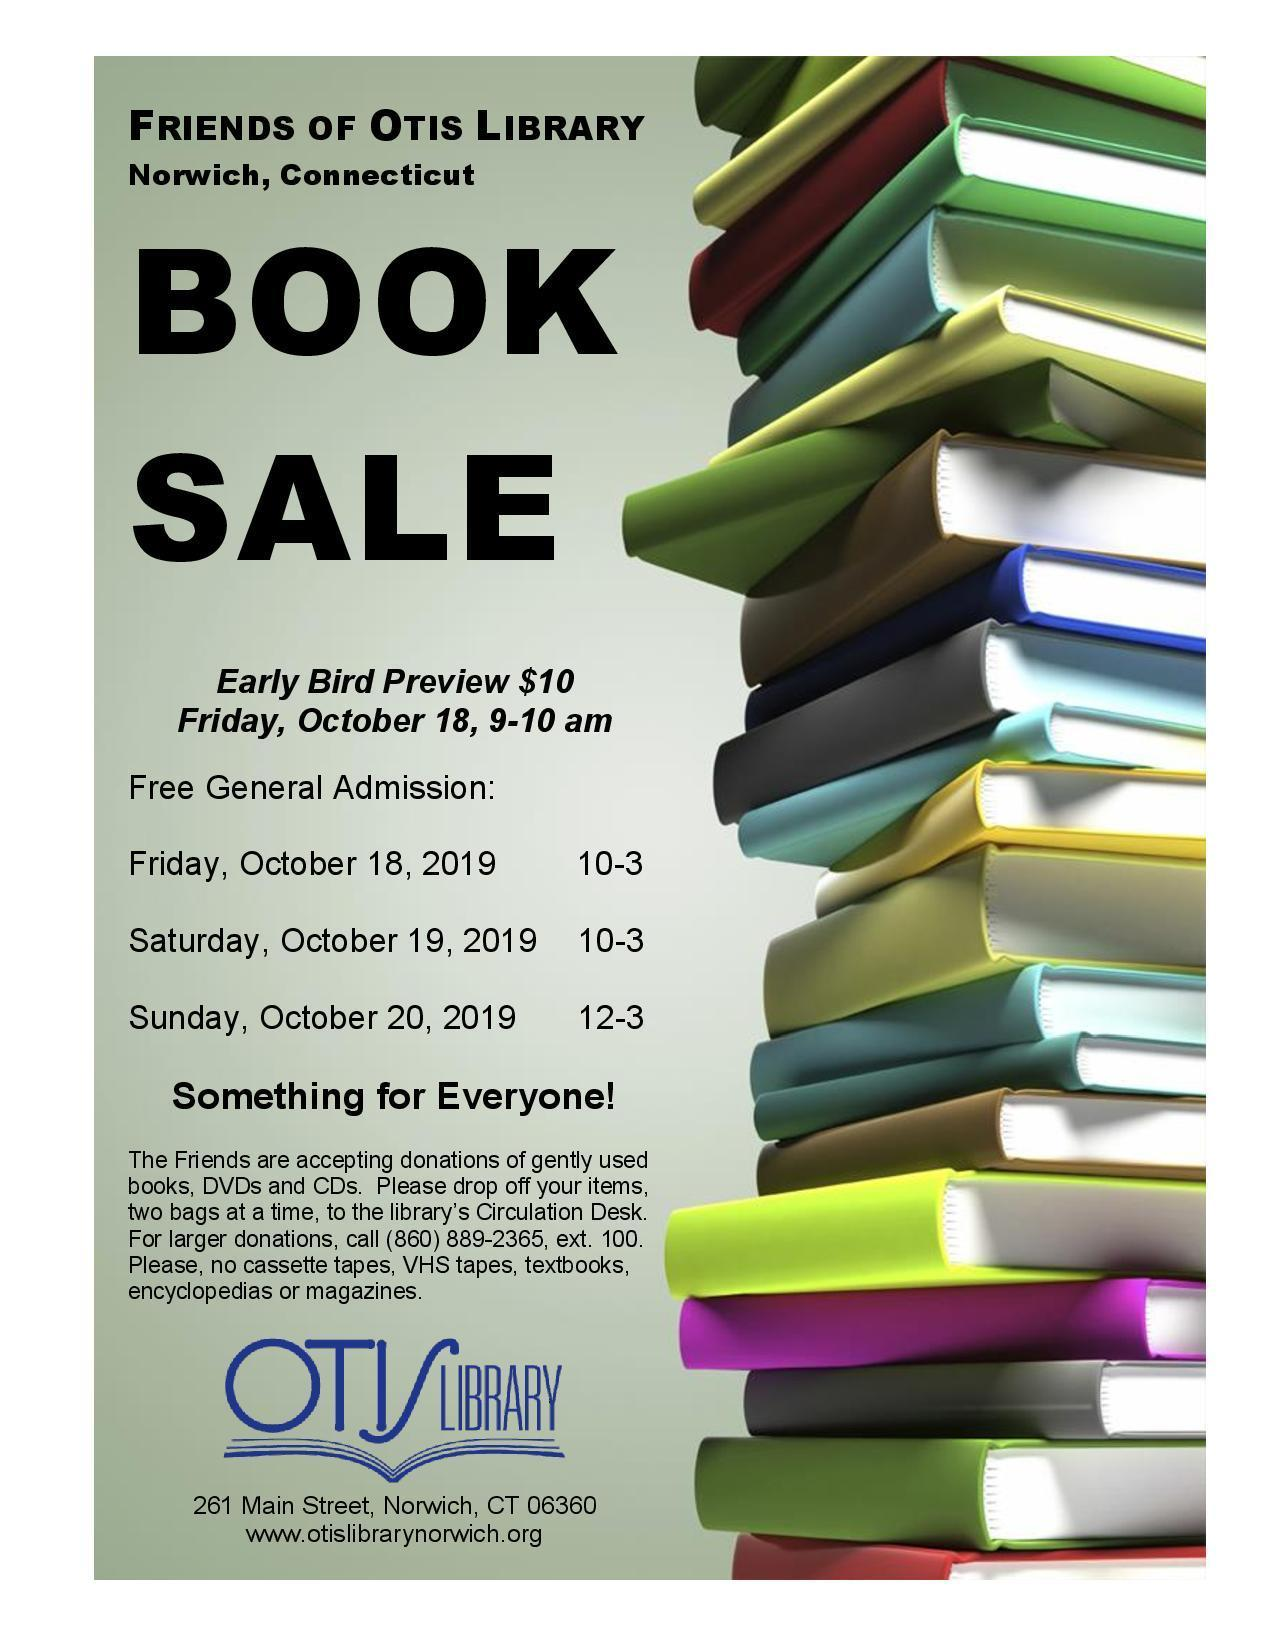 Otis Library Book Sale